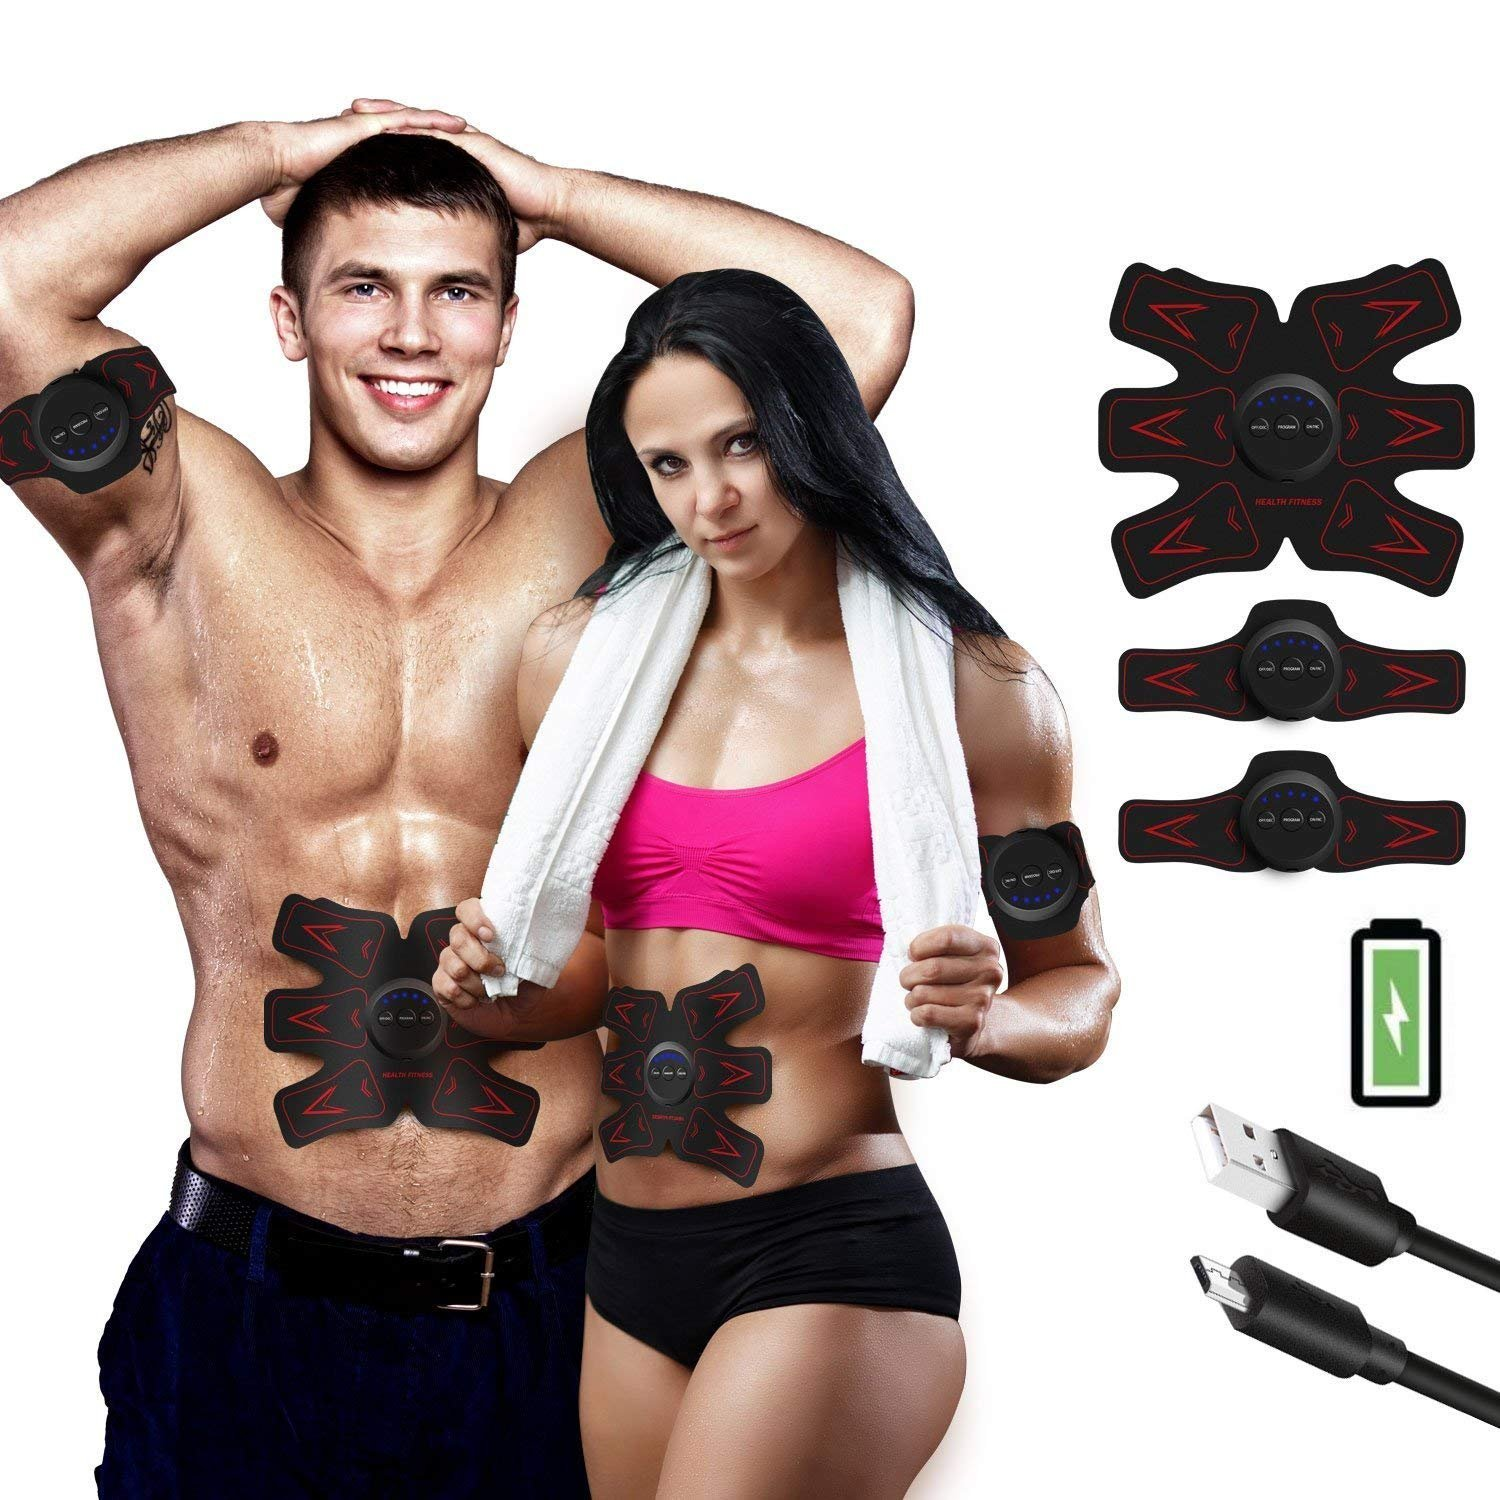 FEIERDUN ABS STIMULATOR Rechargeable Abdominal Muscle Toner Trainer - Portable Toning Belt Ultimate AB Stimulator for Men & Women (Black)